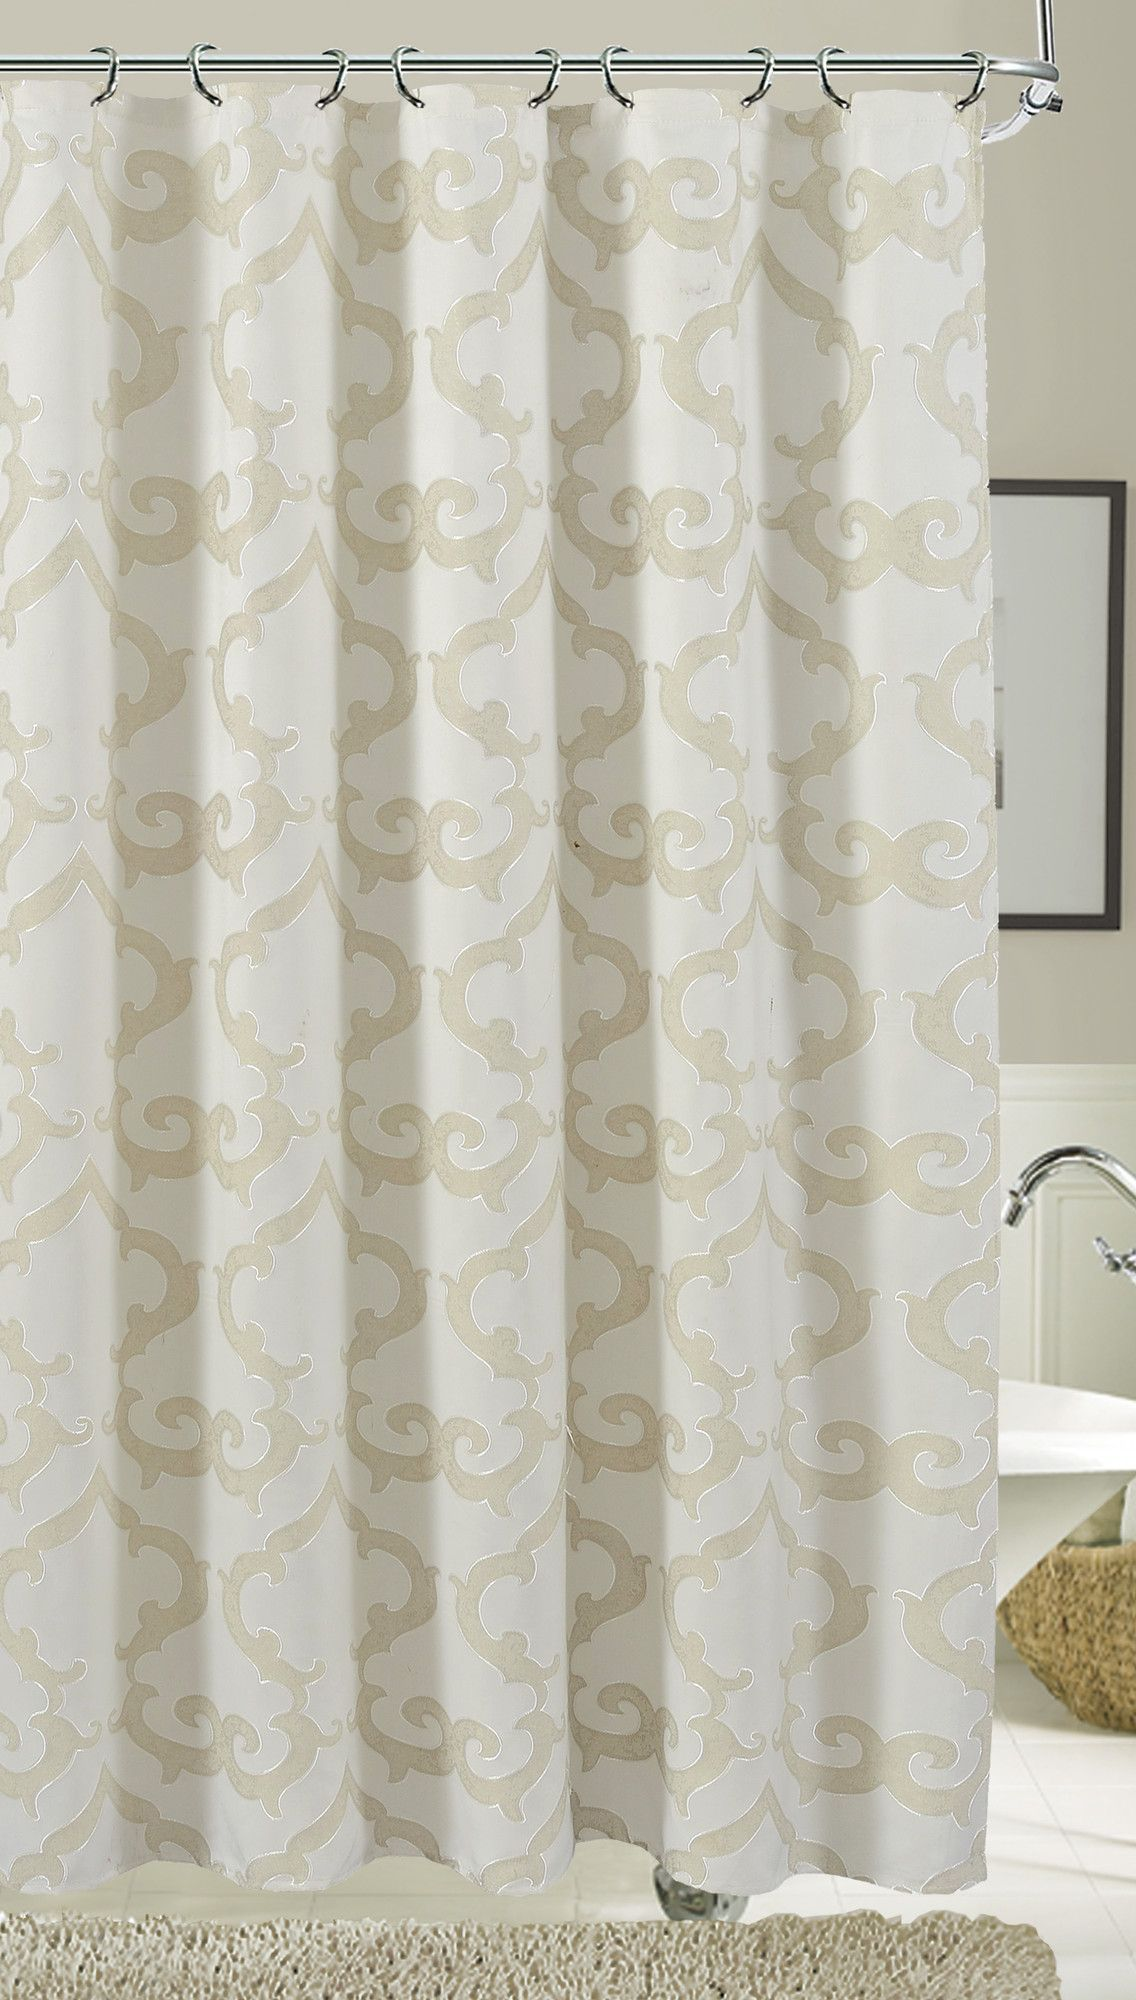 Luxembourg Single Shower Curtain Curtains Fabric Shower